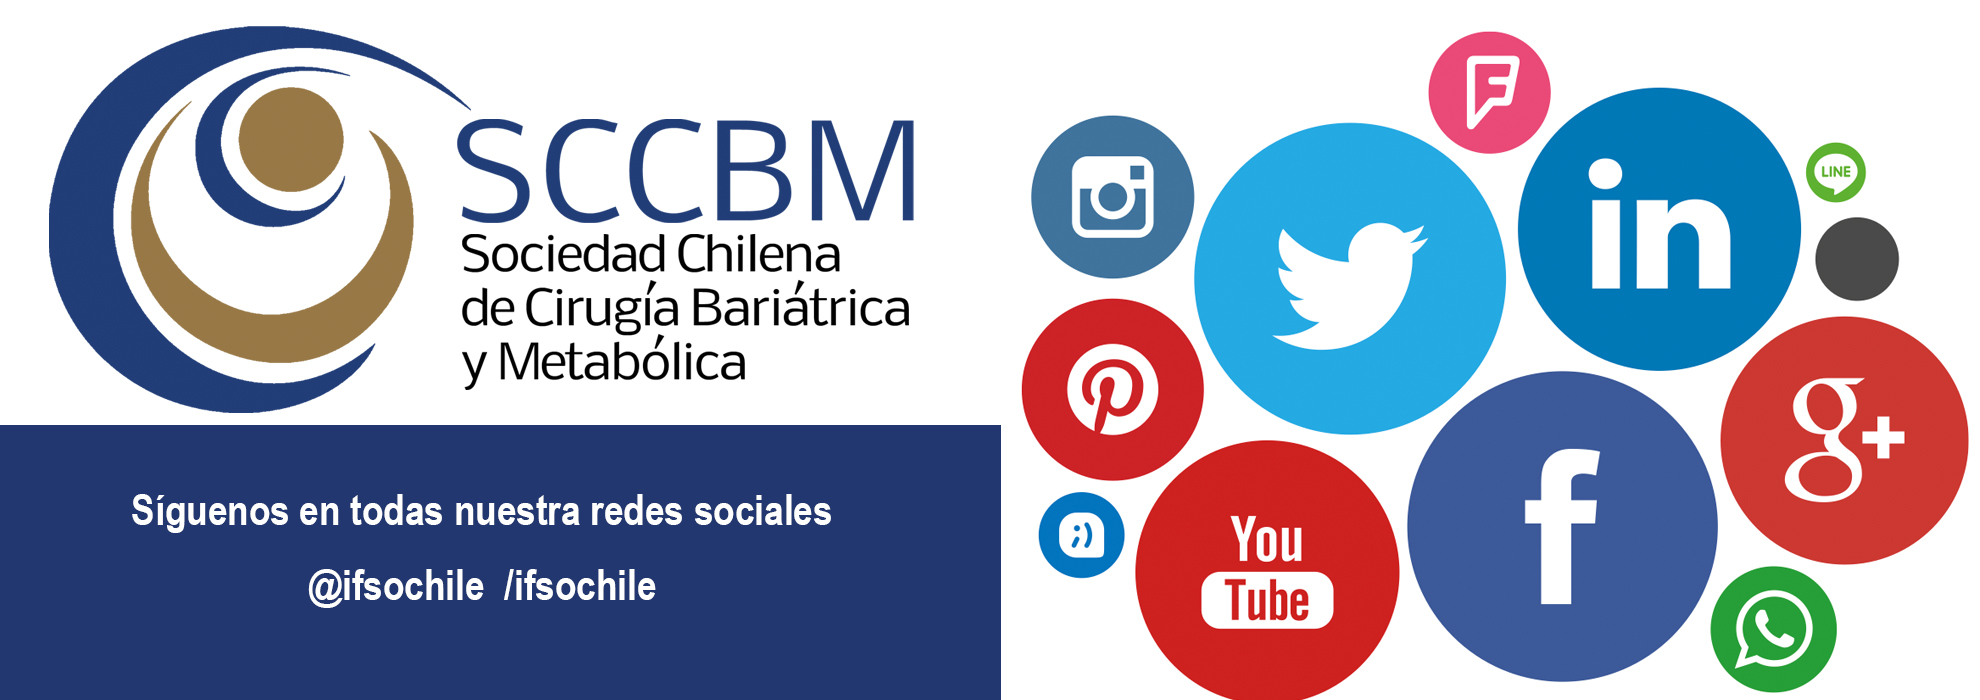 RedesSociales-SCCBMhome